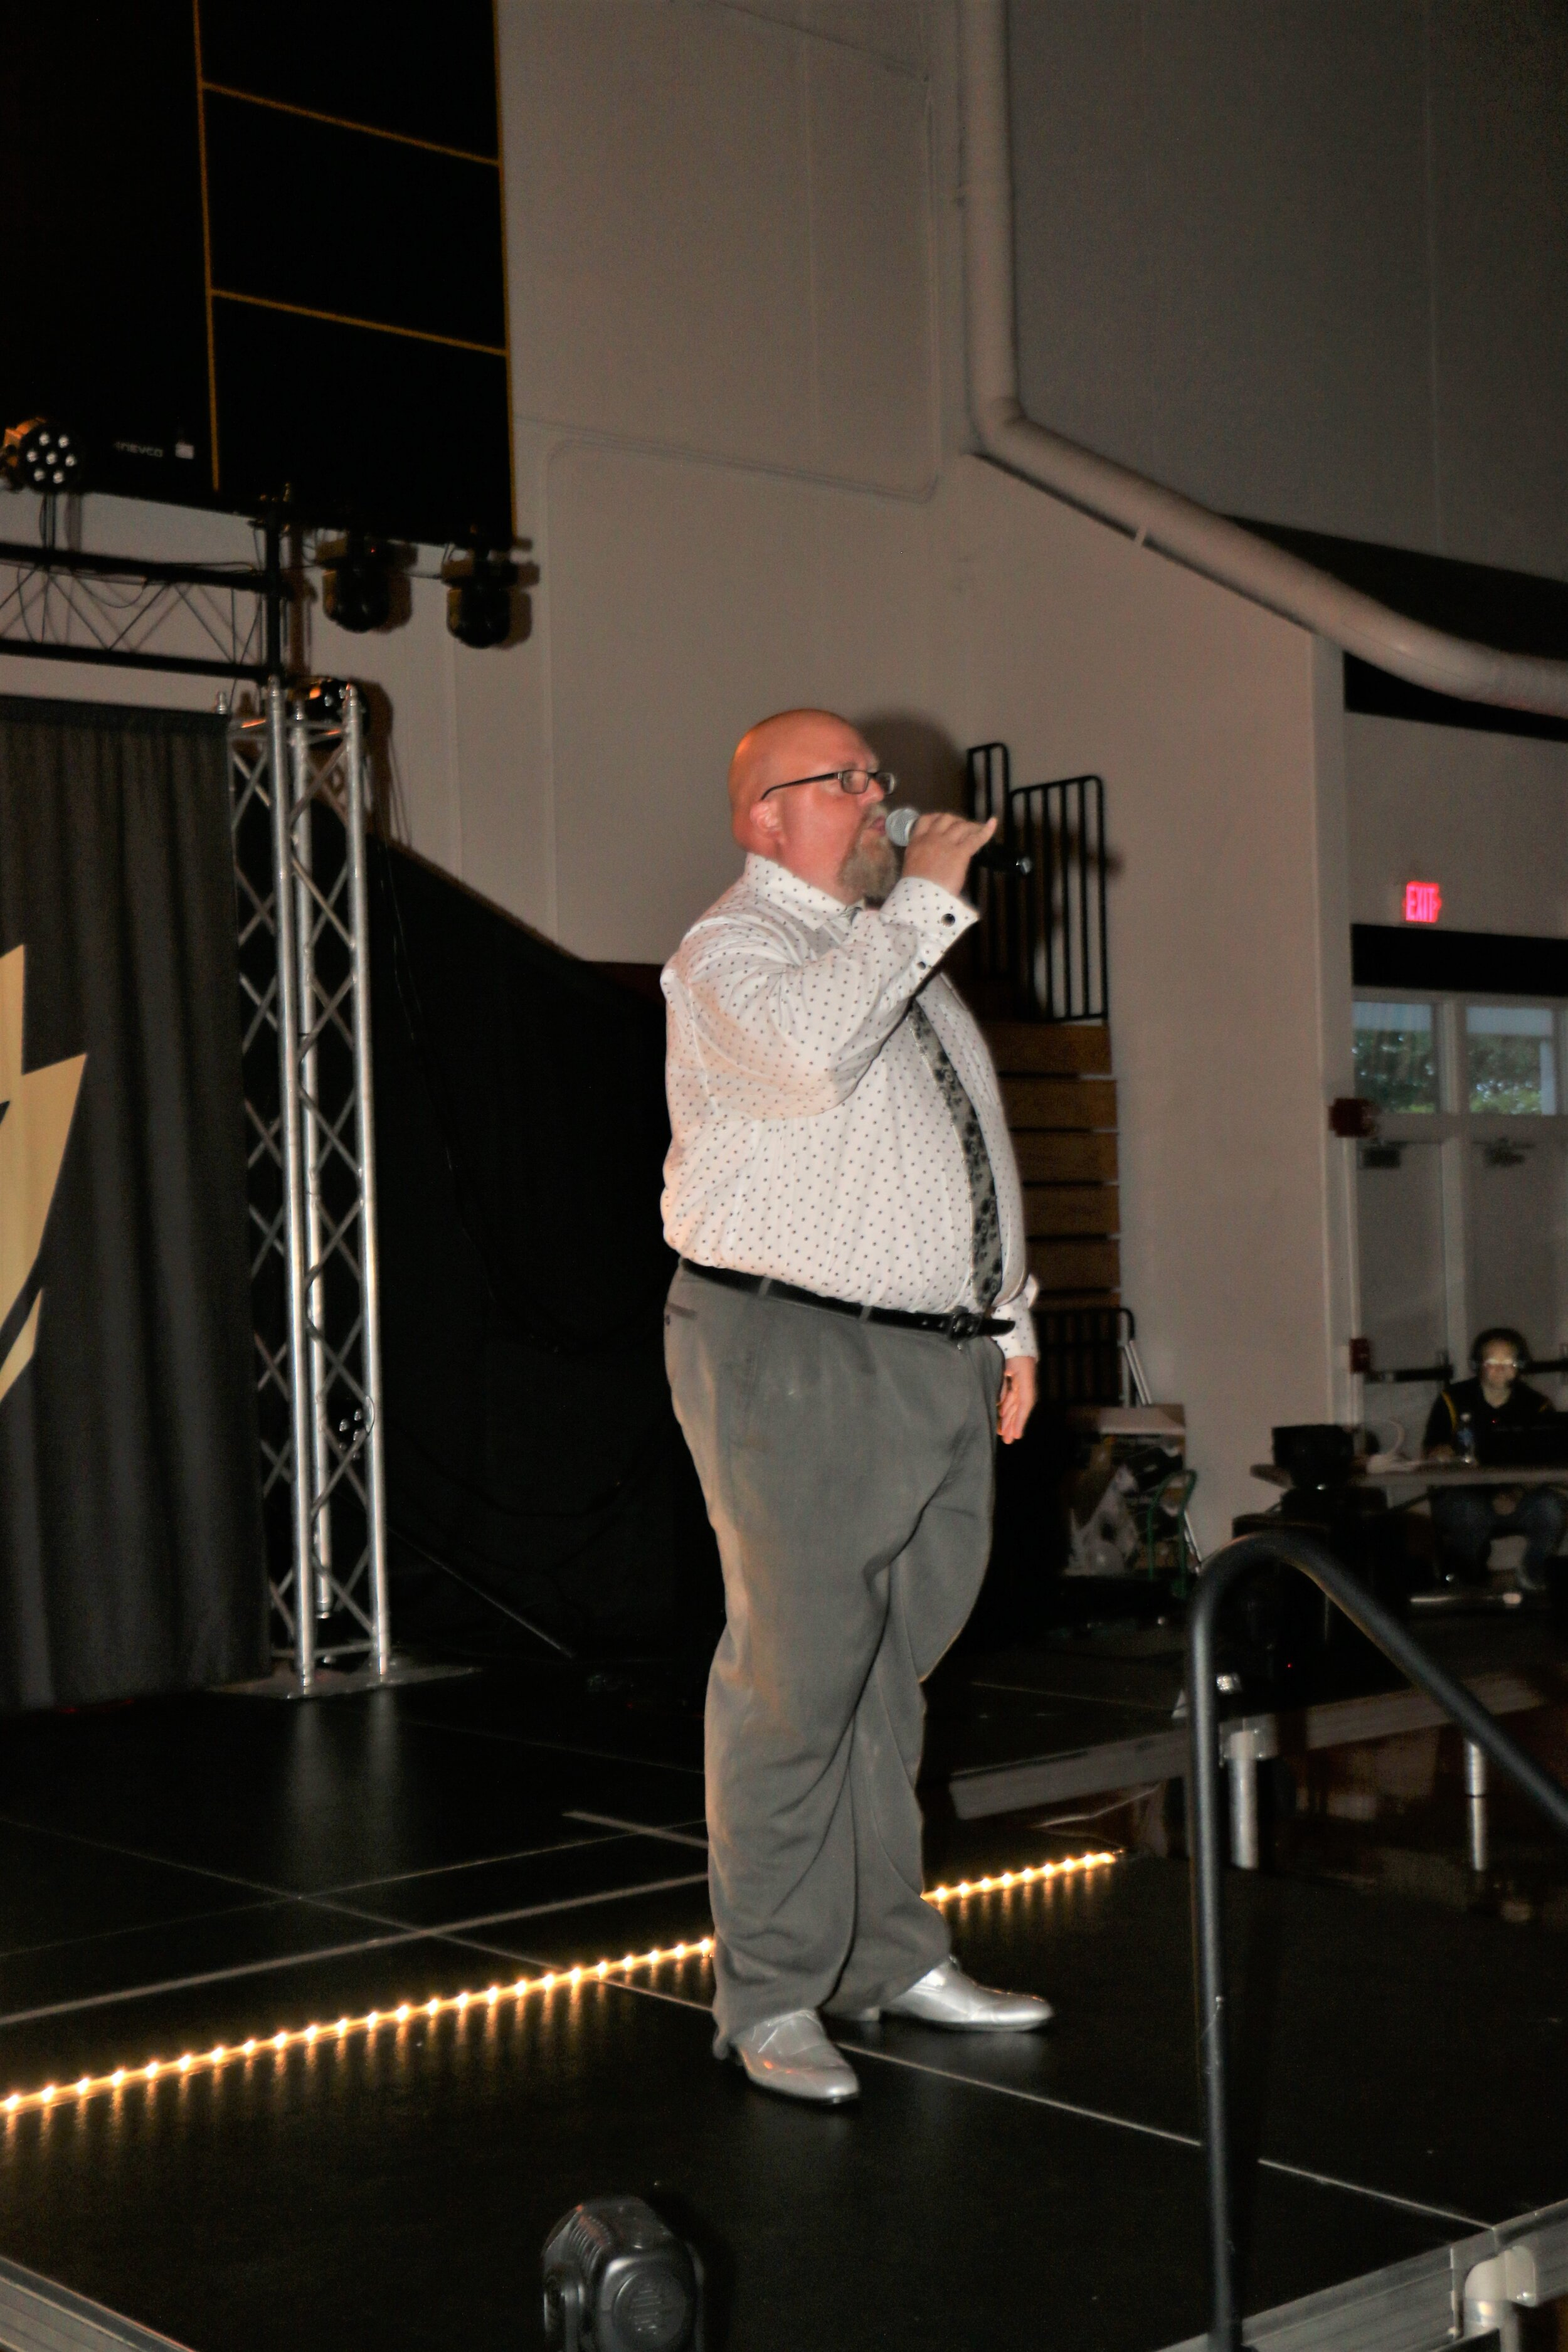 Ring announcer Kirby Van Vliet welcomes fans to Warrior Wrestling 6.